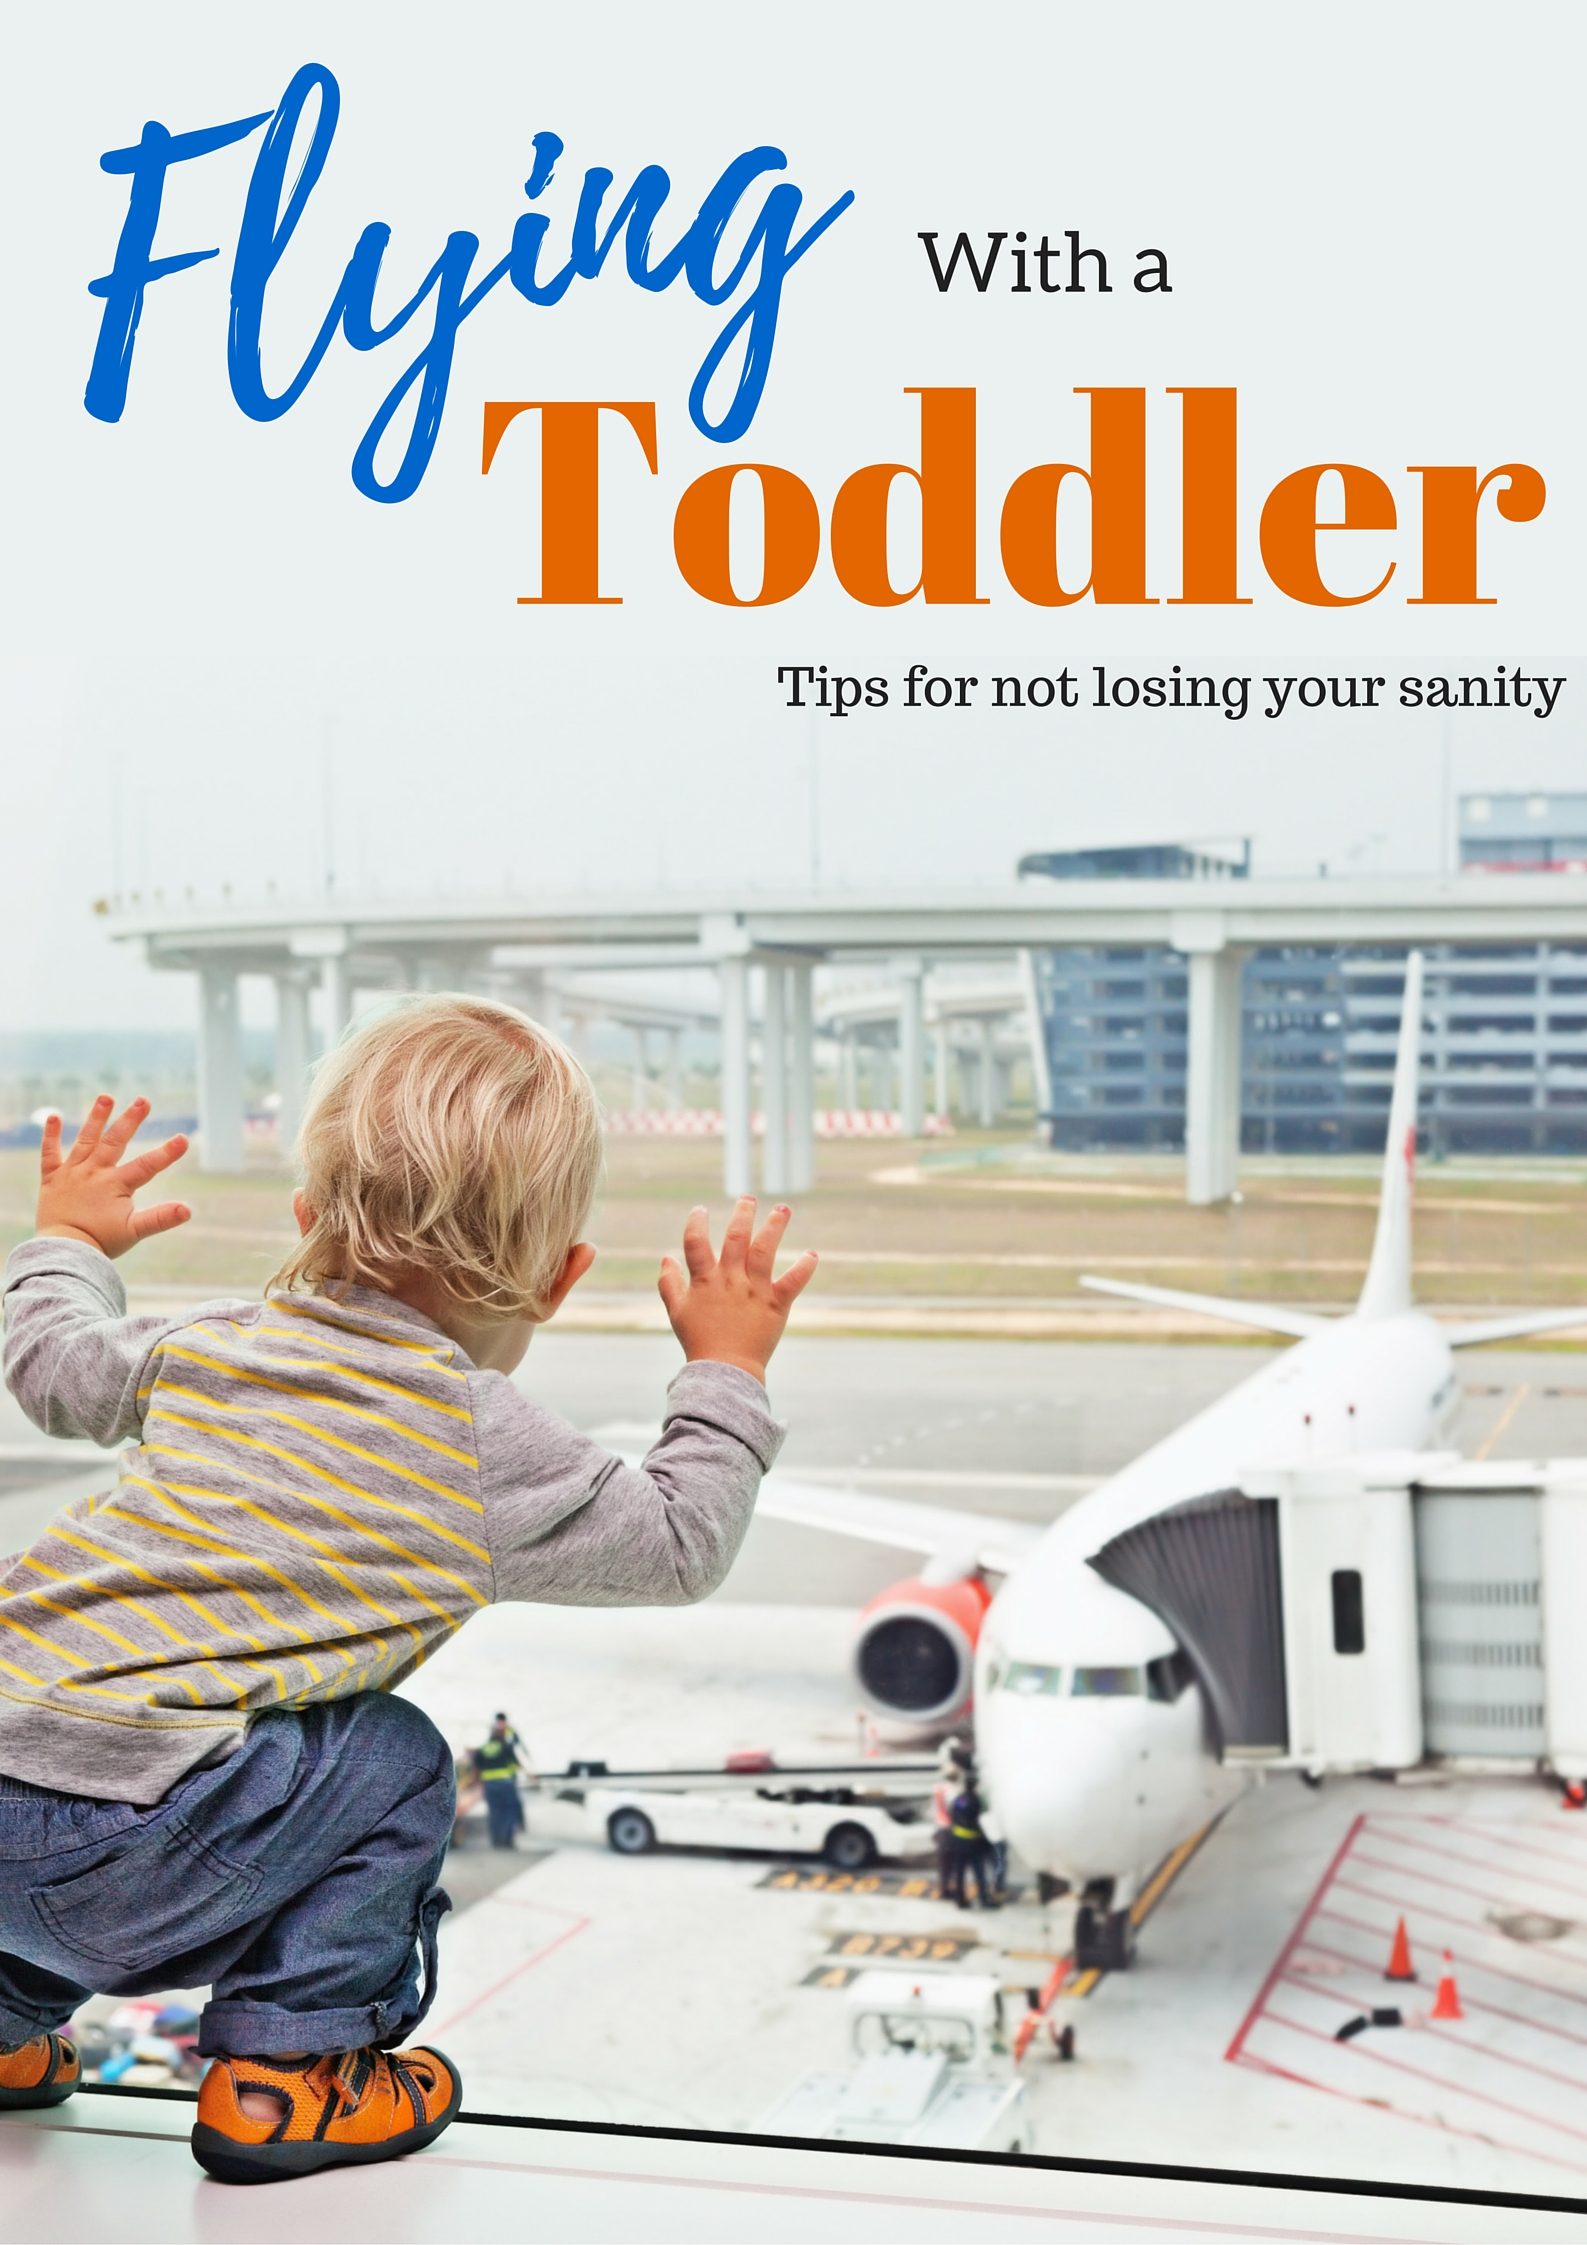 Flying with a toddler can be really hard but if you try out some of these tips, it can make for a much smoother ride for everyone.